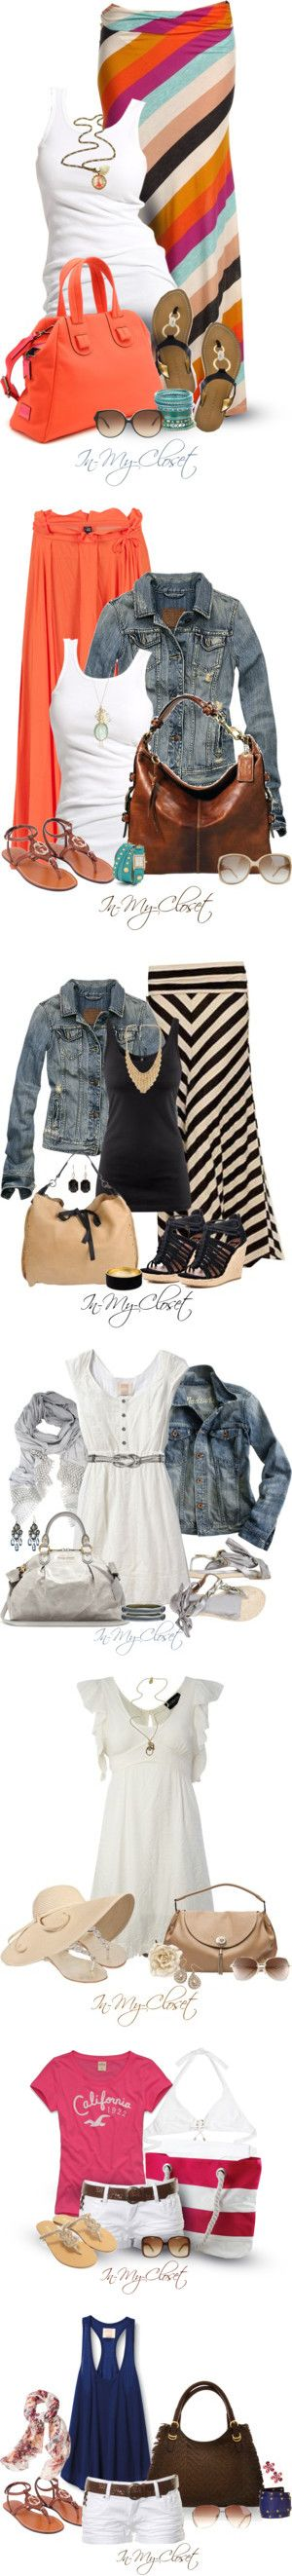 Hurry Up Summer! by in-my-closet on Polyvore featuring moda, Alternative, Soaked in Luxury, Ivanka Trump, Meredith Wendell, Accessorize, Victoria Beckham, meredith wendell, Cheap Monday and Abercrombie & Fitch